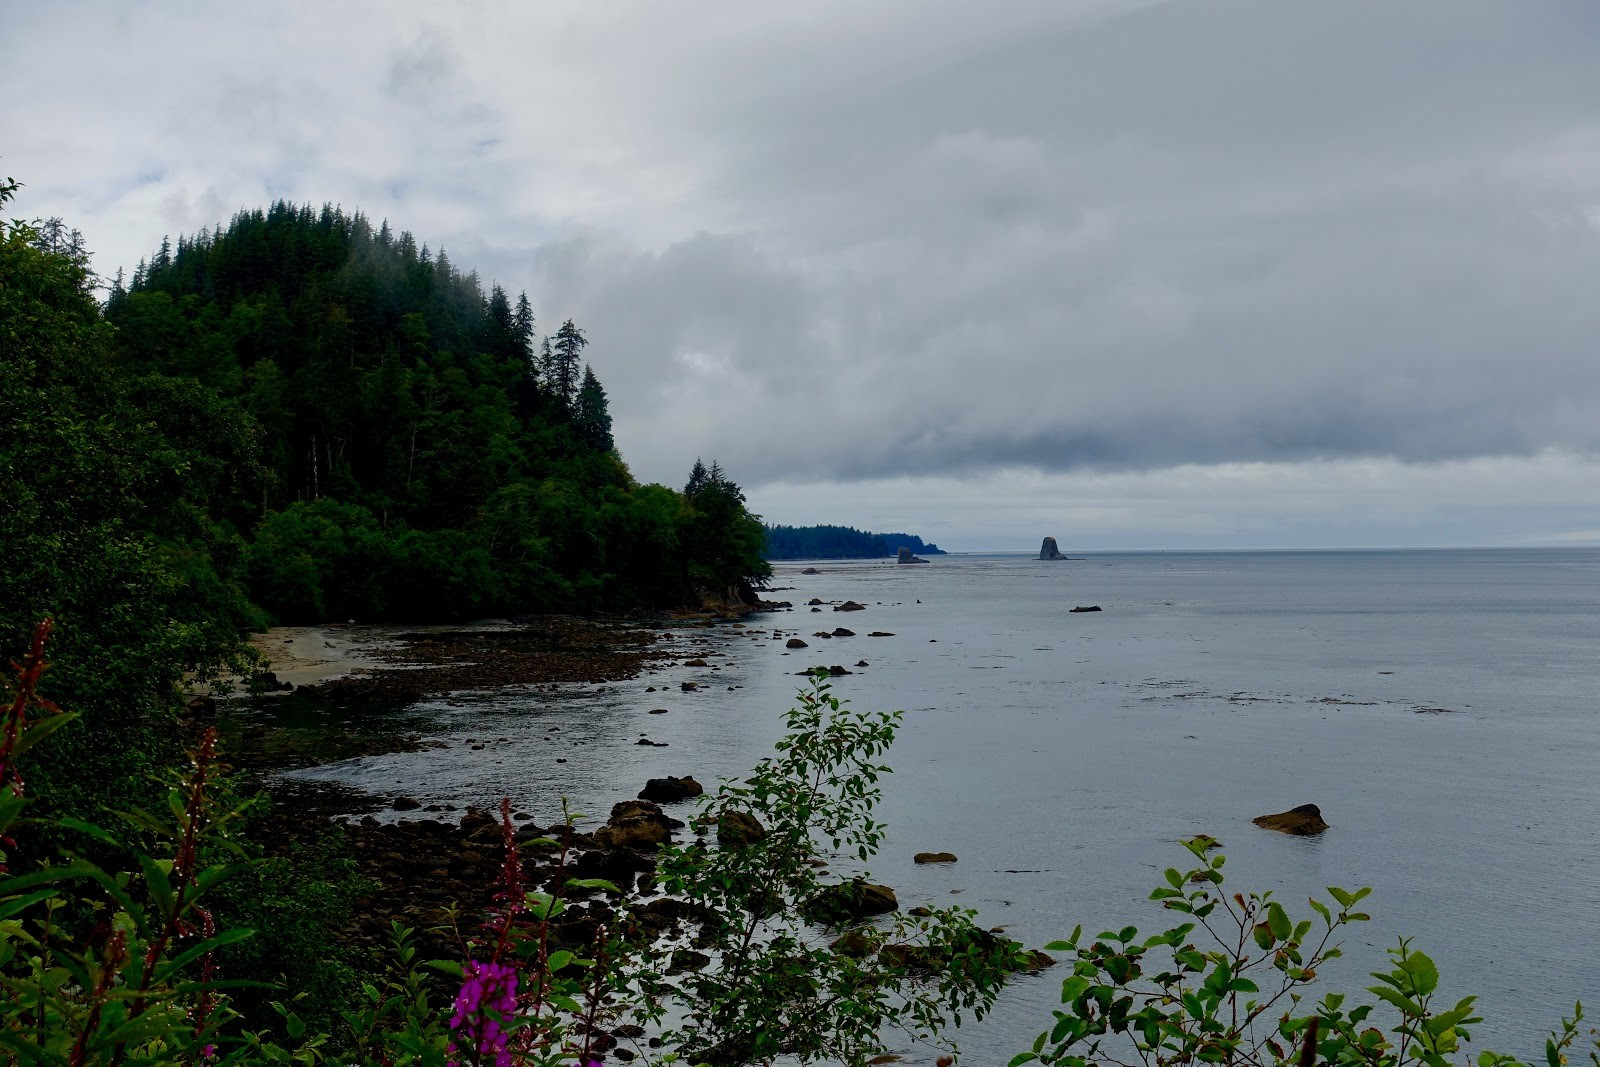 Neah Bay, Olympic National Park